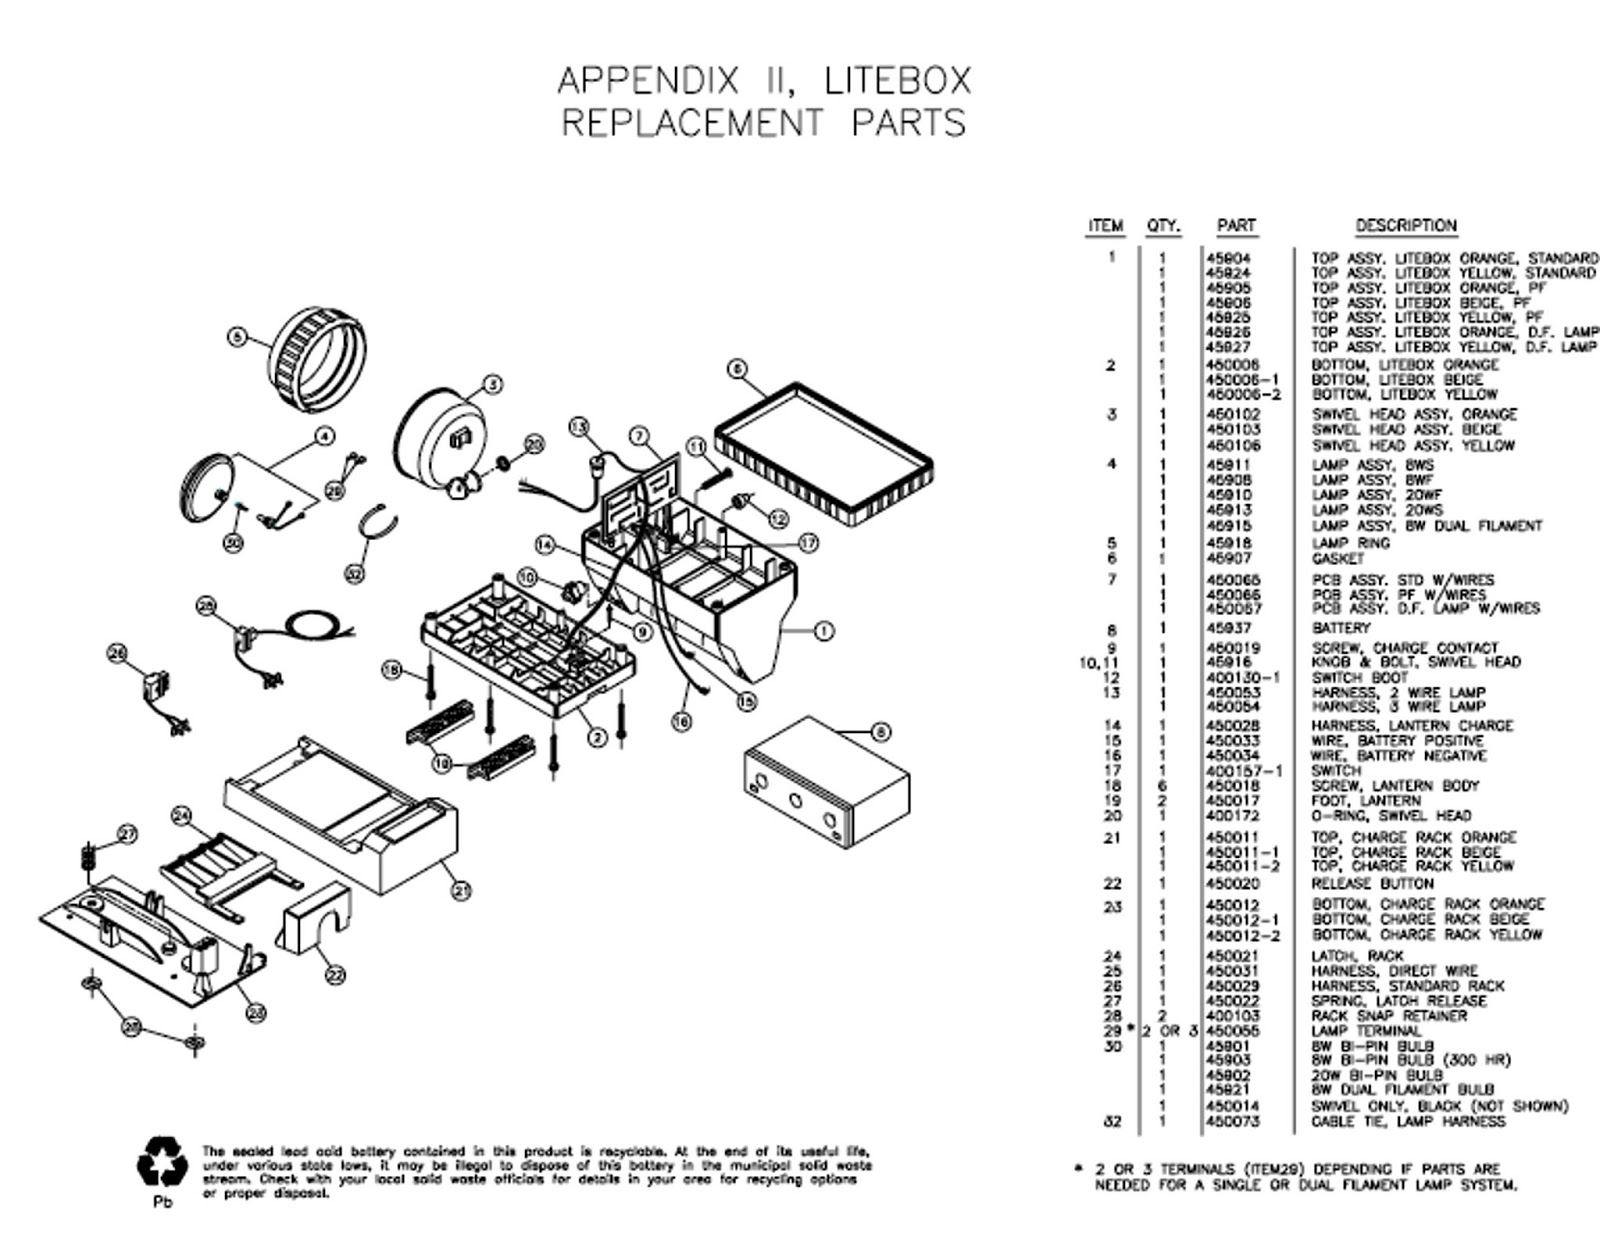 All About Batteries Agt Battery Supply Parts Diagram For